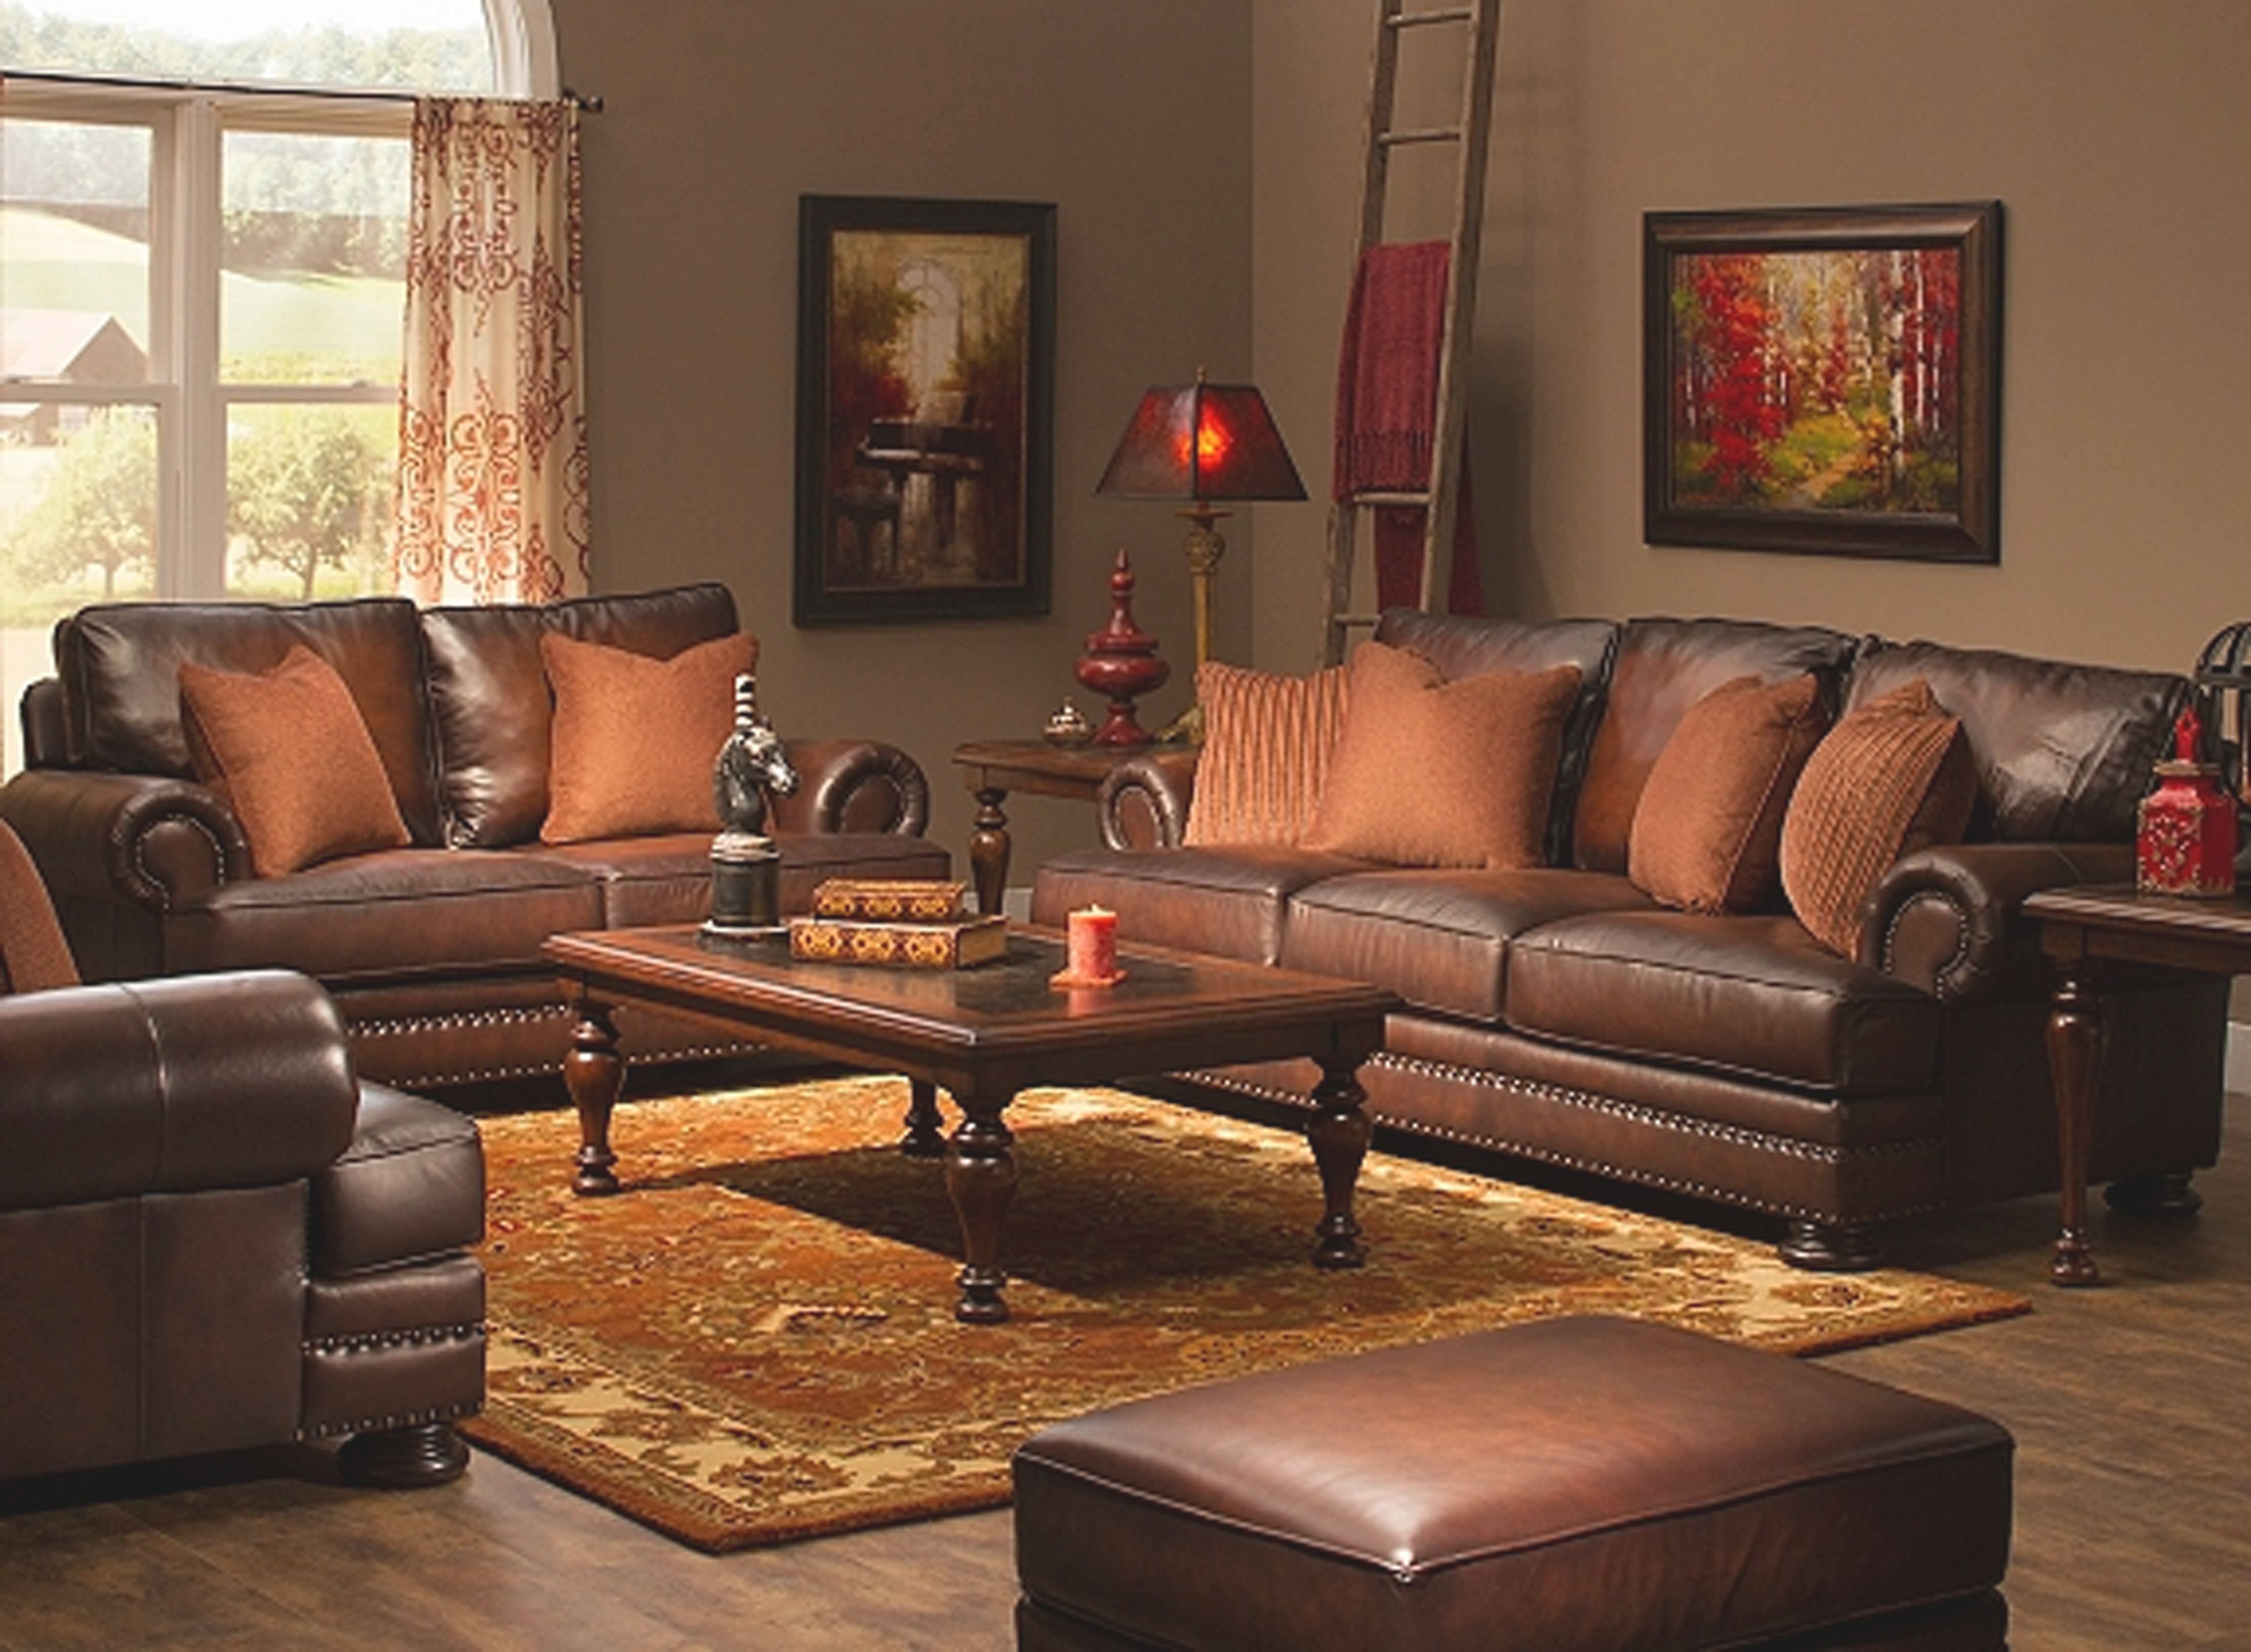 Living Room Furniture Raymour Flanigan Kmart Coupons Australia Within Inspirational Raymour And Flanigan Living Room Sets Awesome Decors